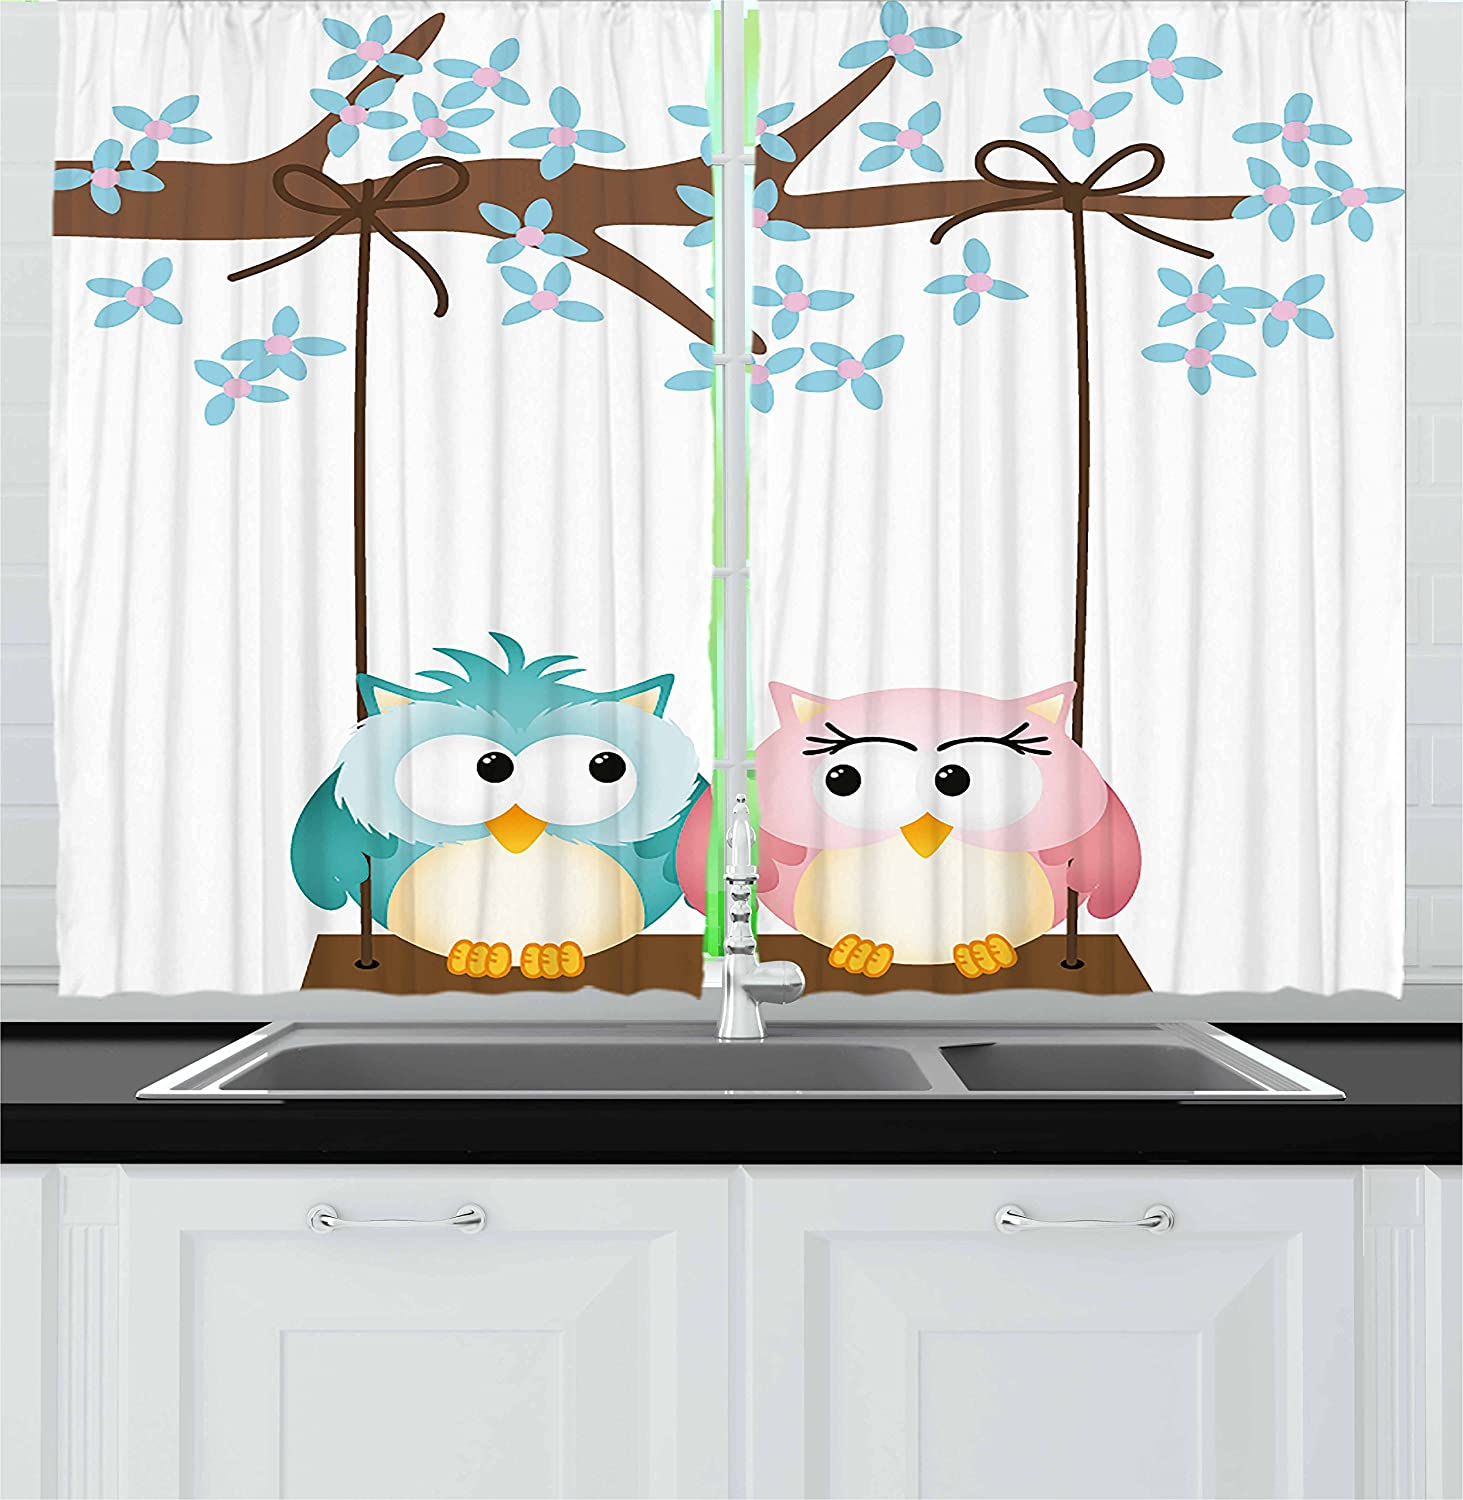 """Ambesonne Nursery Kitchen Curtains, 2 Owls in Love on a Swing Blossoming Tree Branch Spring Romance, Window Drapes 2 Panel Set for Kitchen Cafe Decor, 55"""" X 39"""", Pale Blue"""